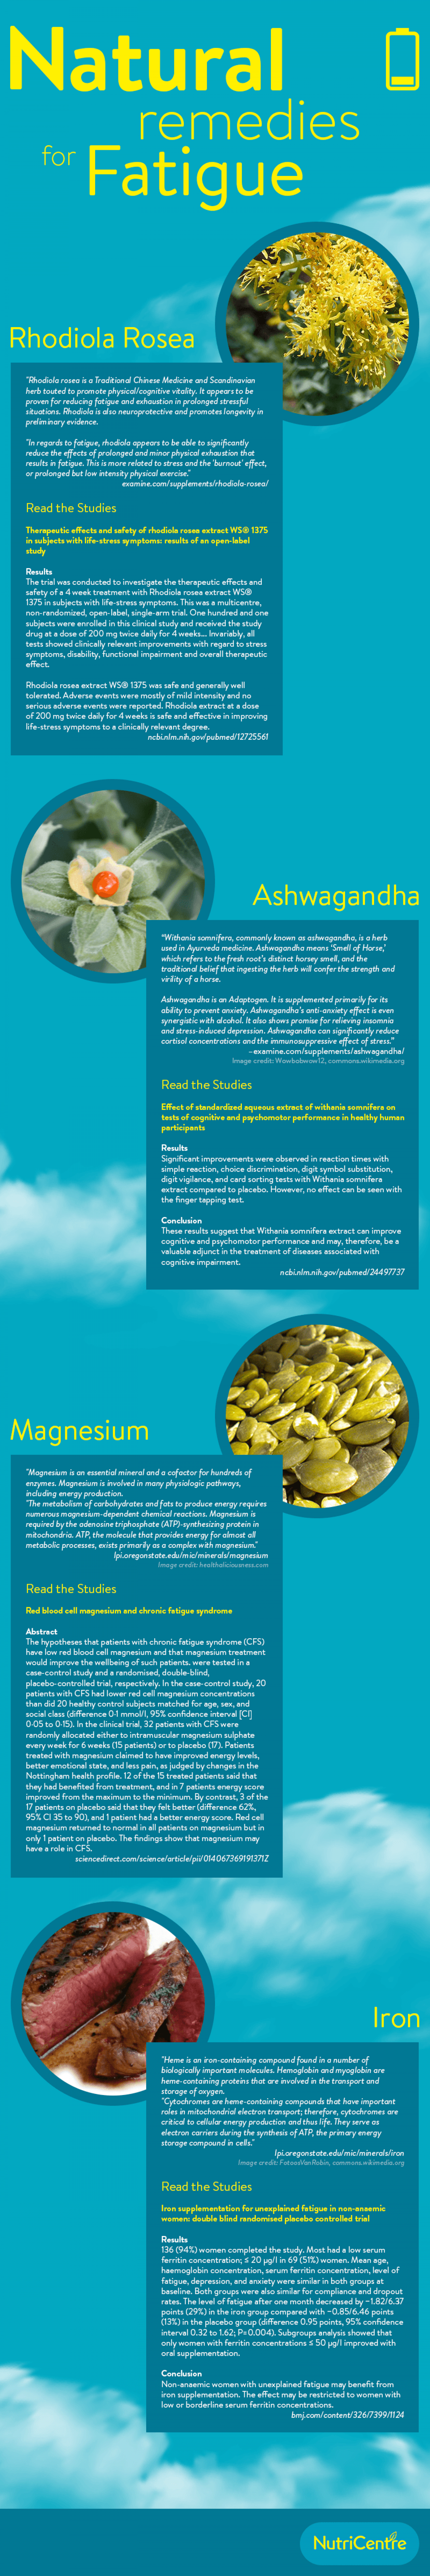 Natural Remedies for Fatigue - A Guide Infographic